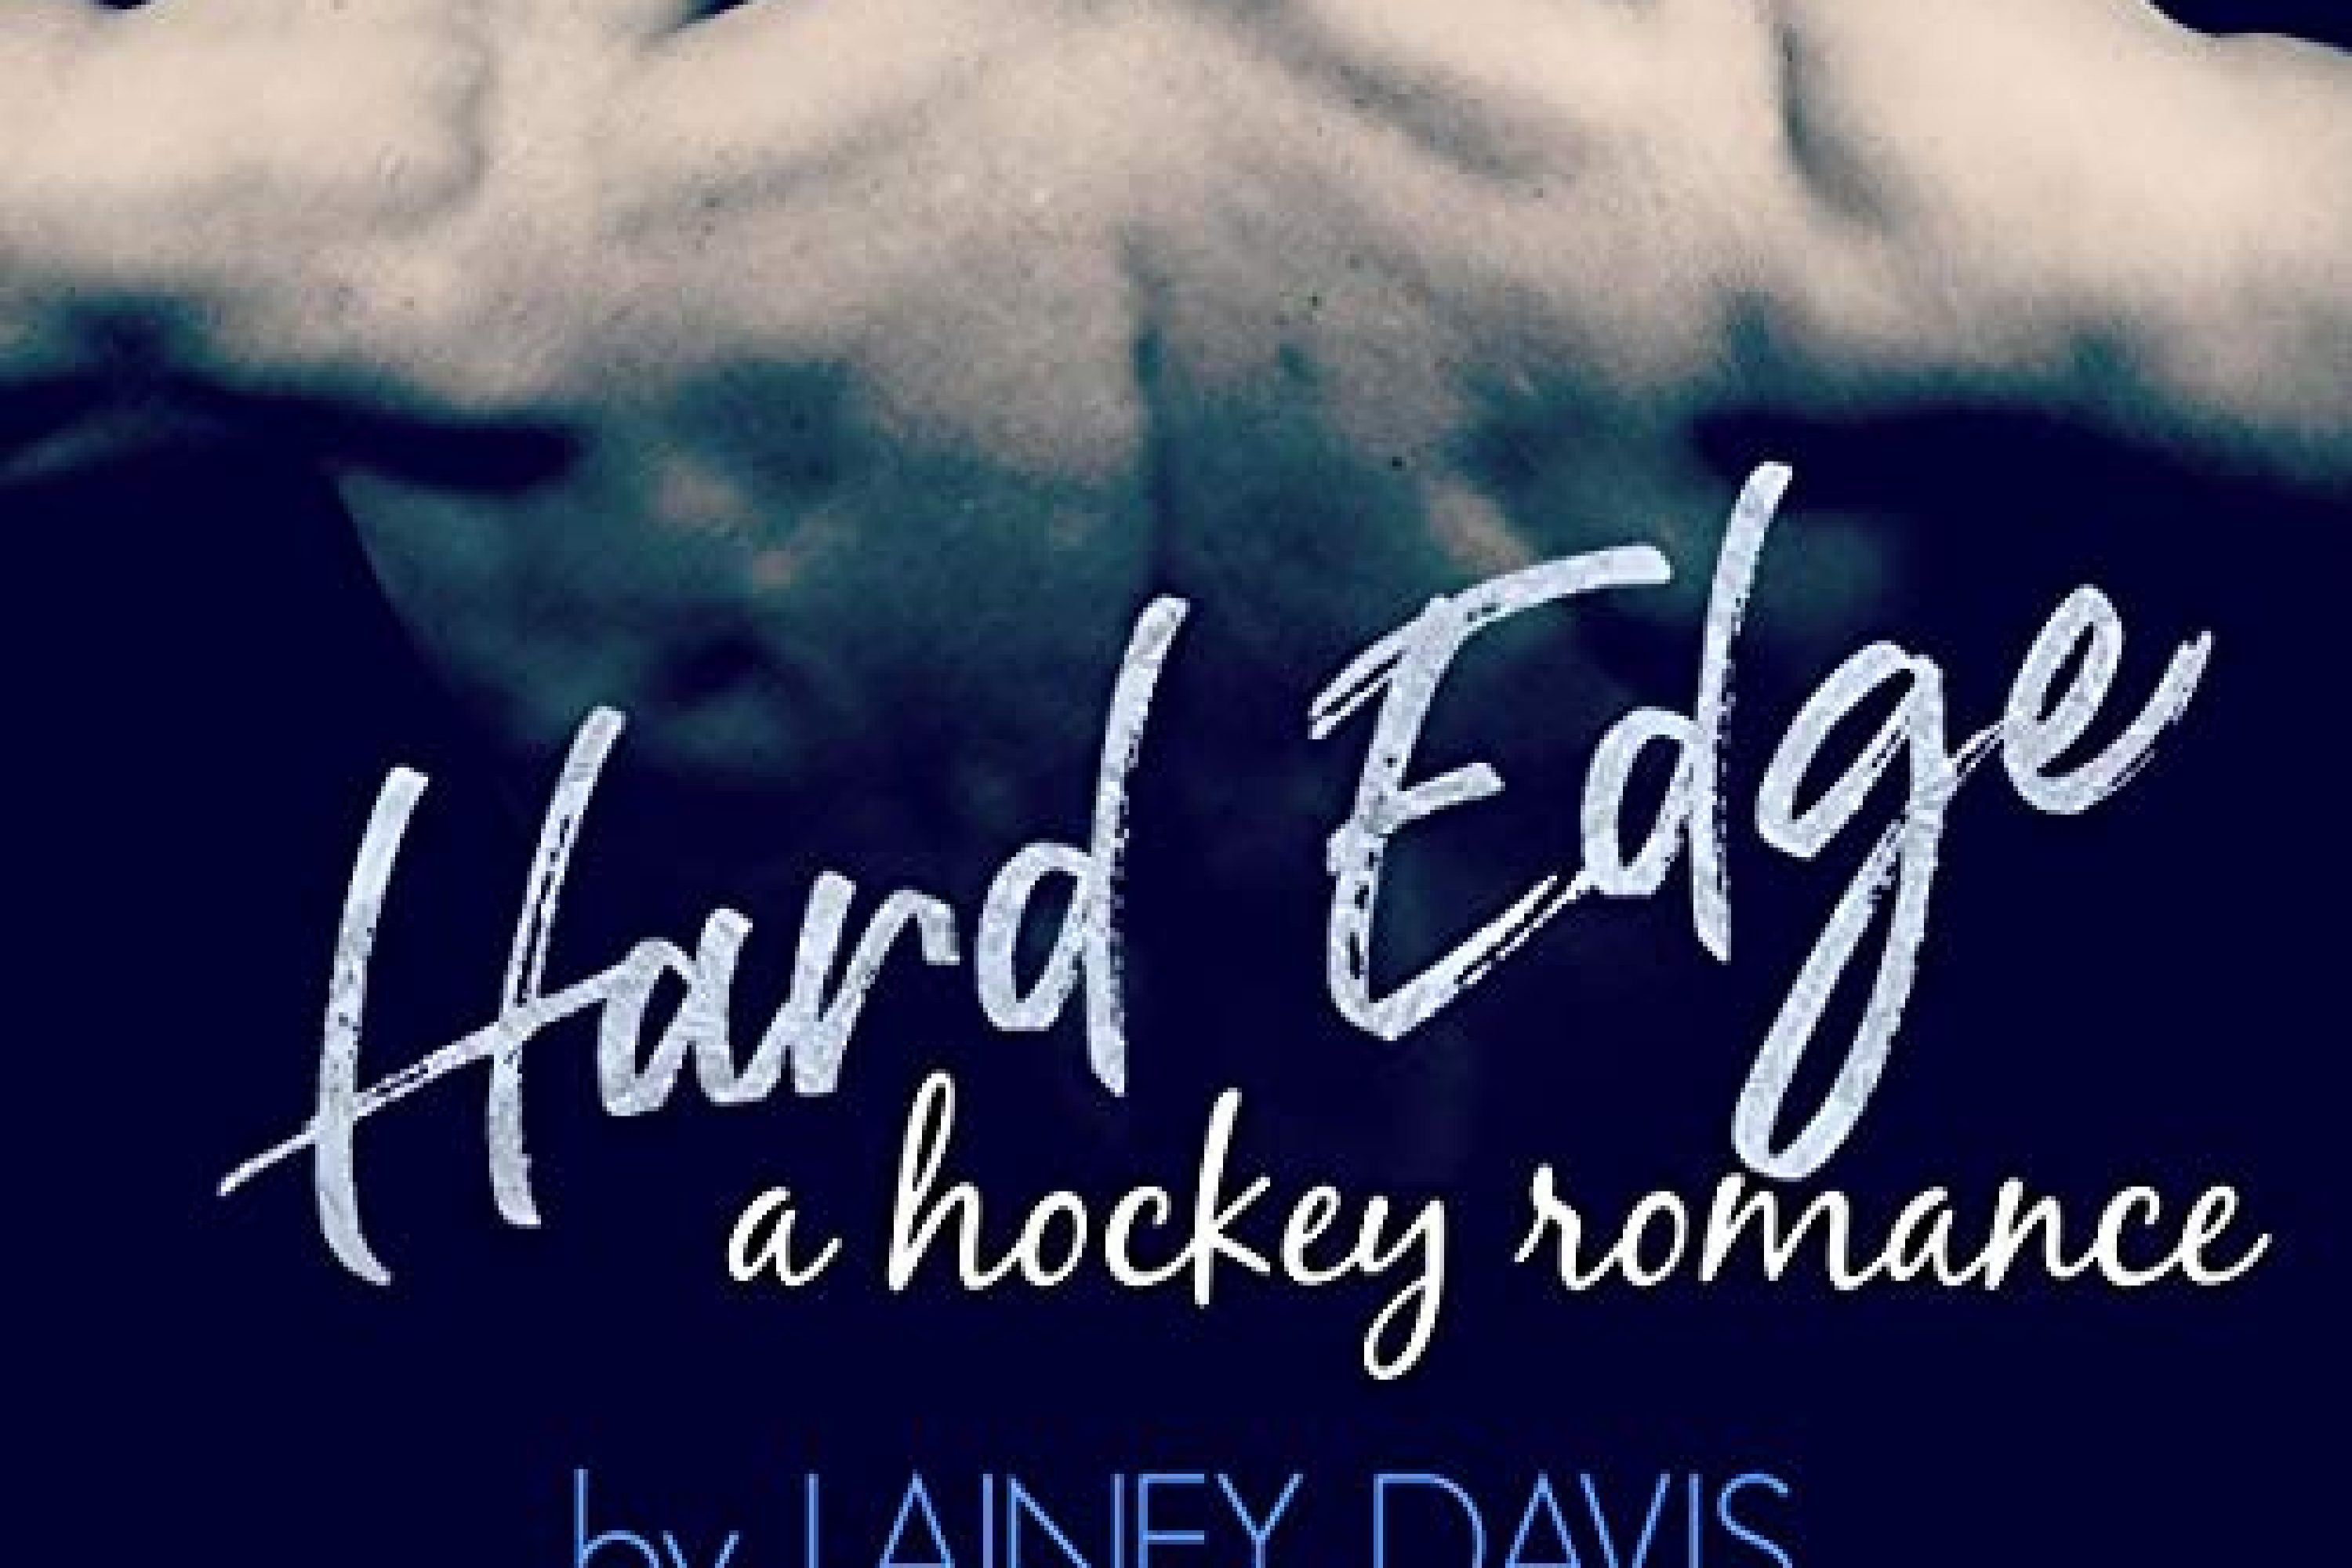 Audiobook Review: Hard Edge by Lainey Davis